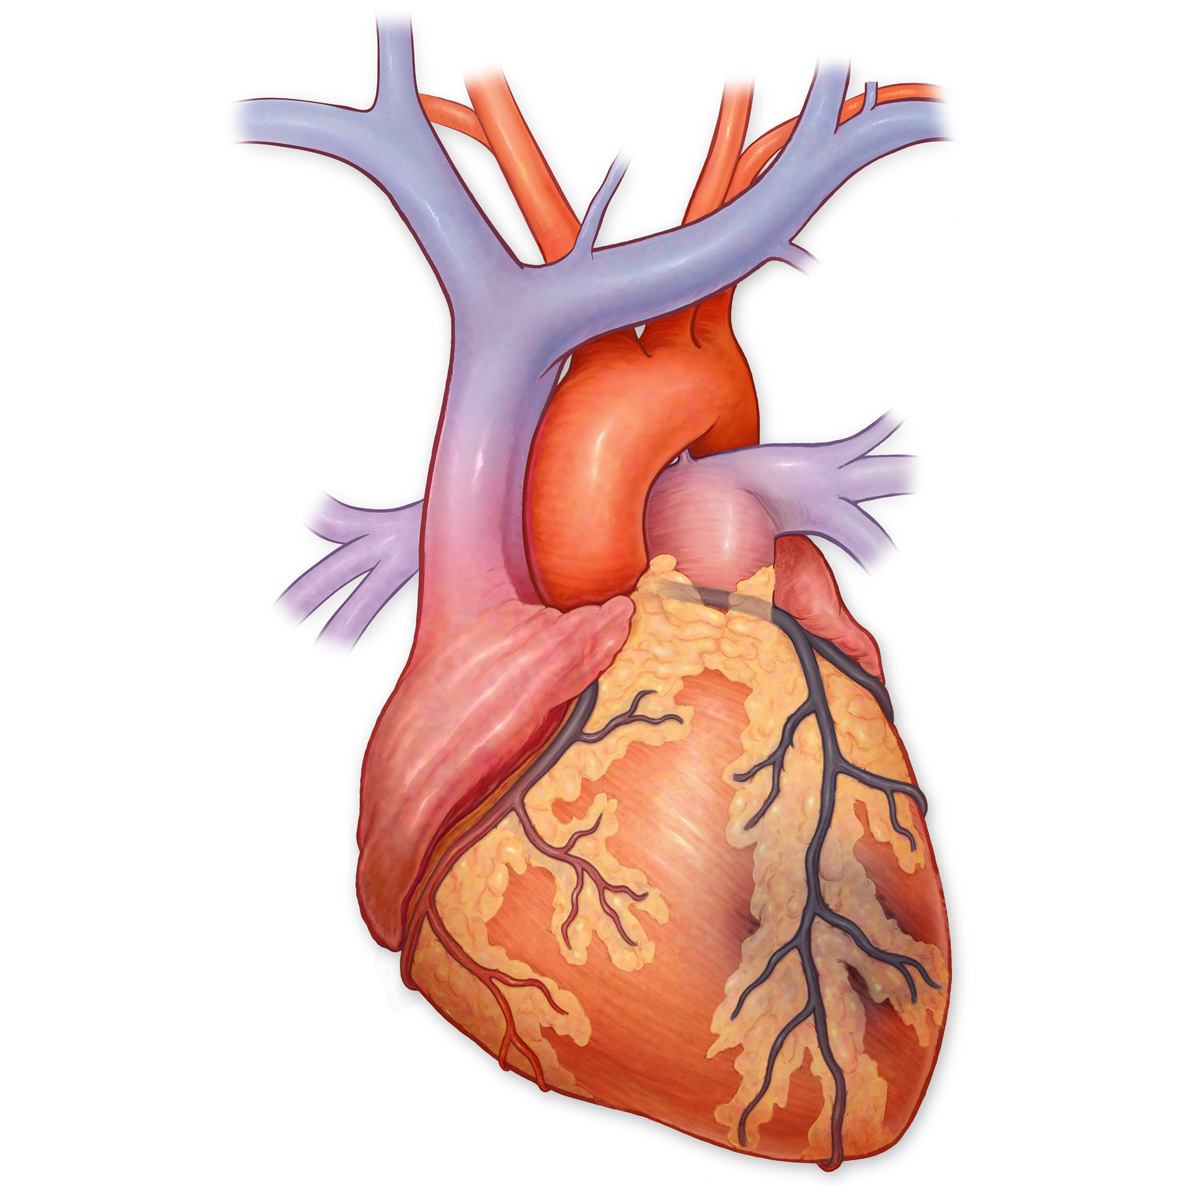 Medical Stock Art, Myocardial Infarction (heart attack)